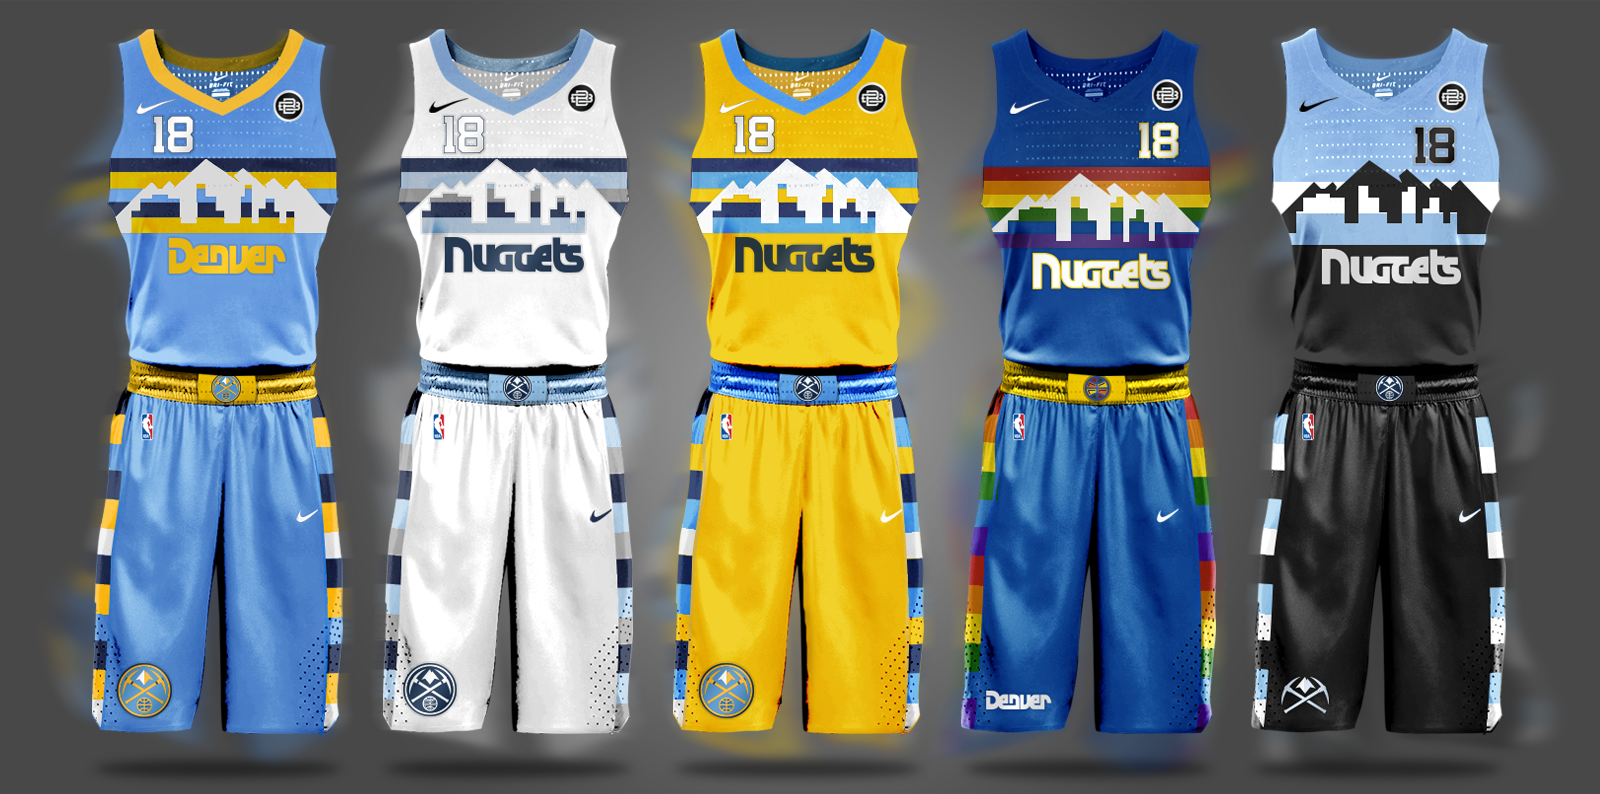 NBA Nike Uniform Concepts - I Am Brian Begley